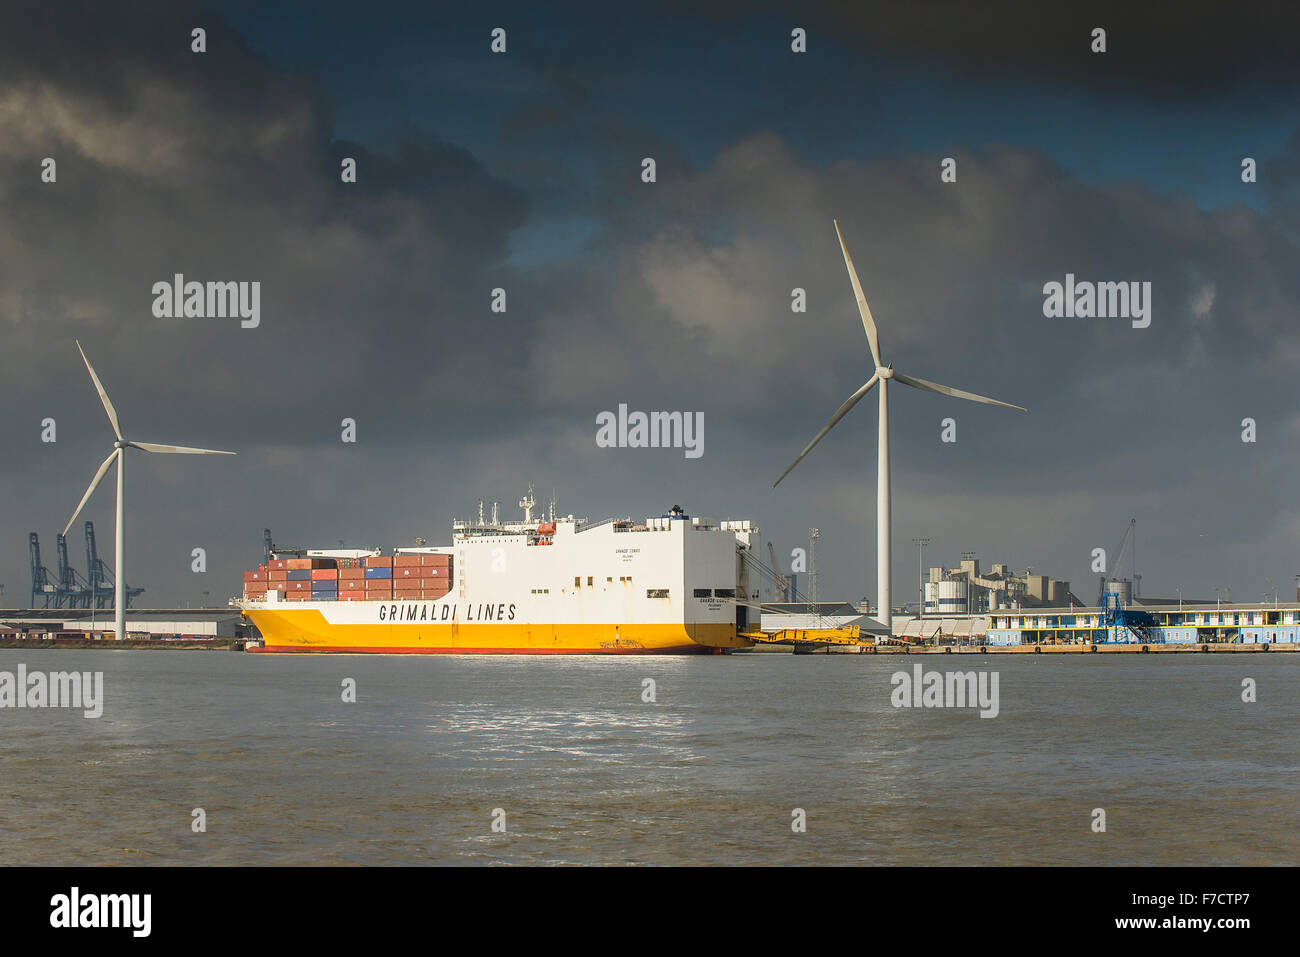 The container ship, Grande Congo berthed at the Port of Tilbury on the River Thames. - Stock Image